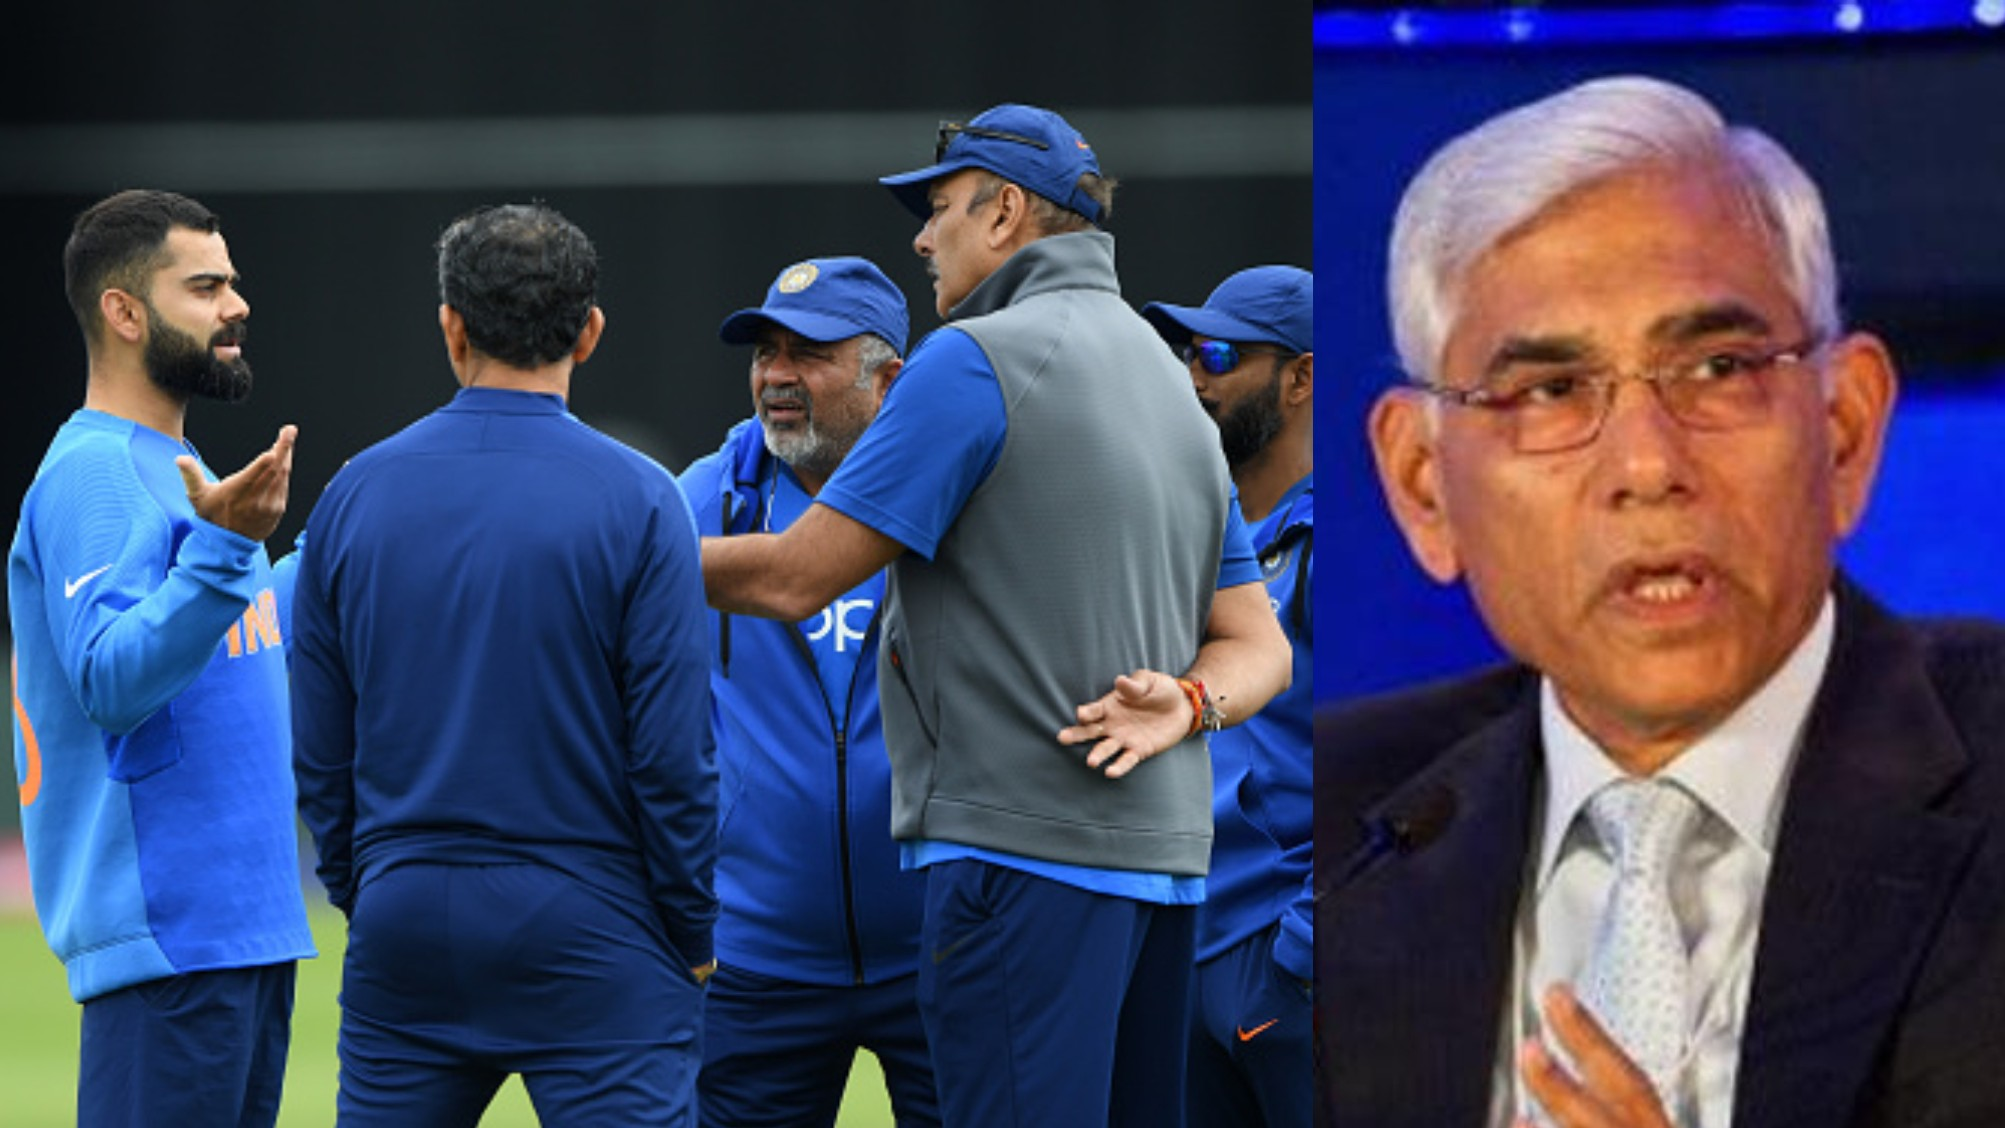 CoA confirms there will be no review of Team India's performance in World Cup